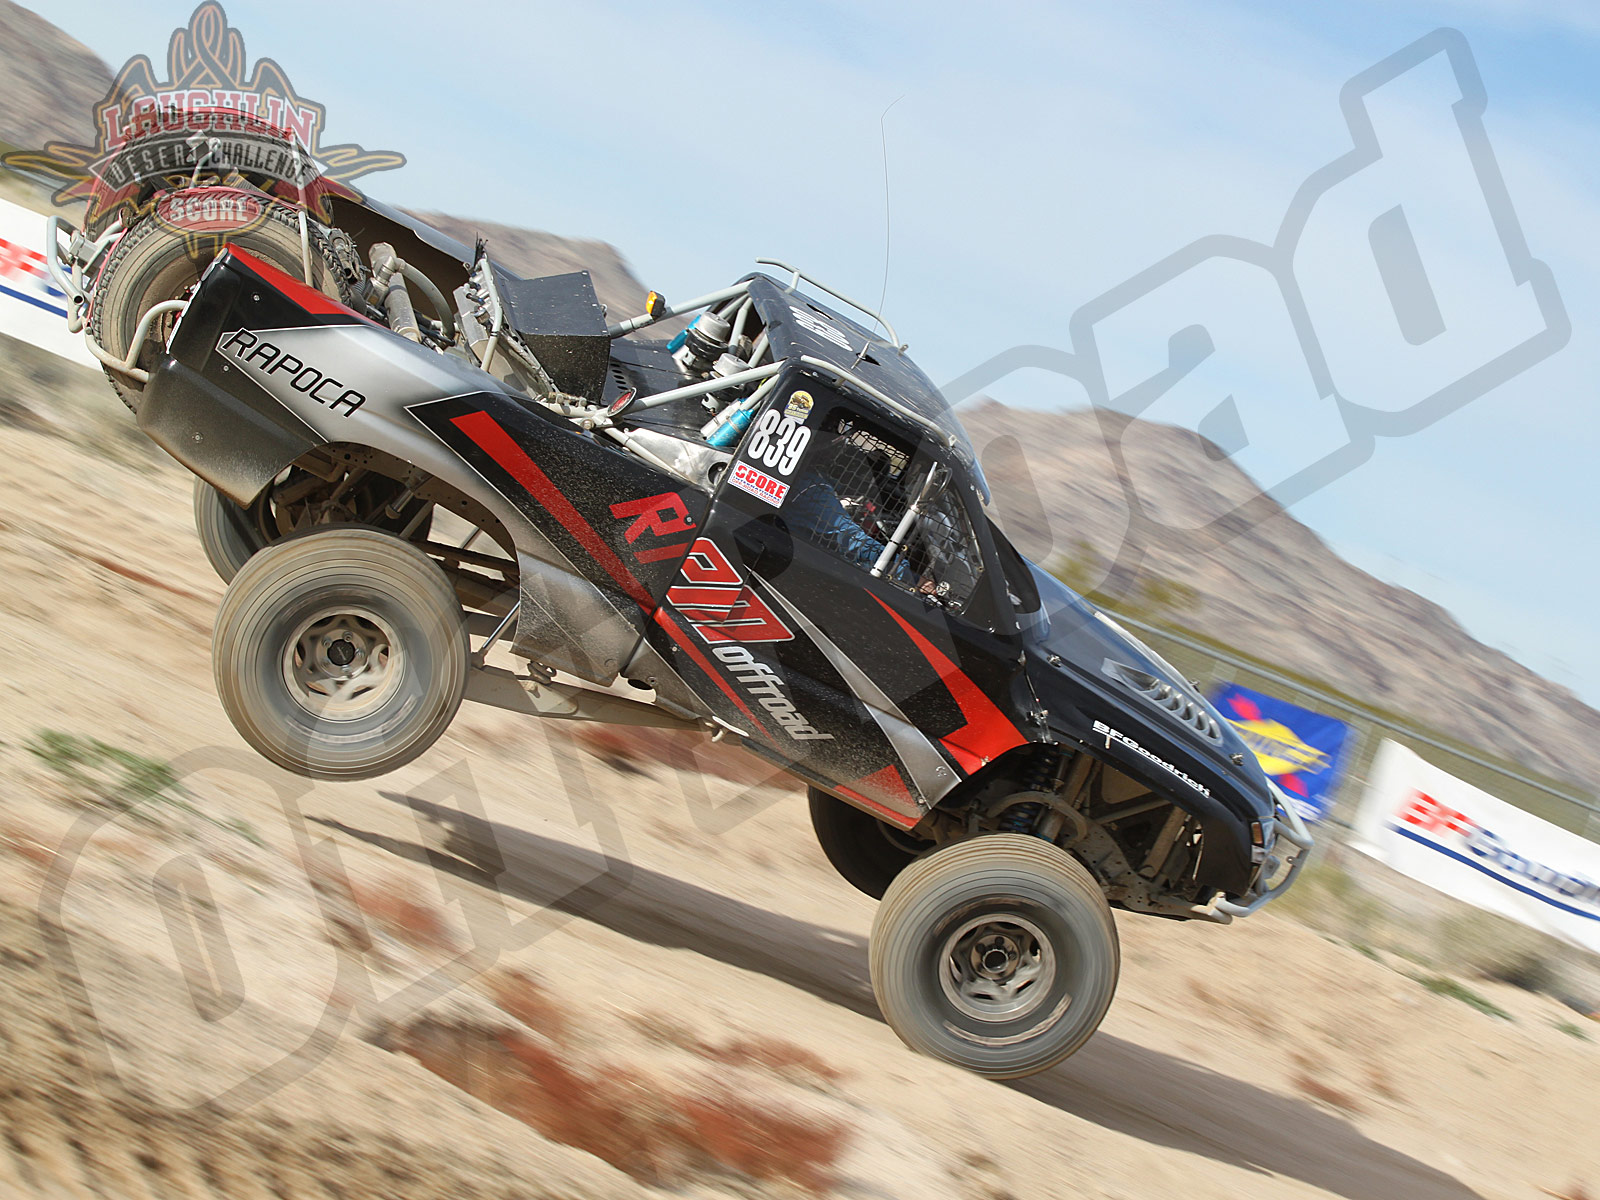 012011or 6626+2011 score laughlin desert challenge+truck classes